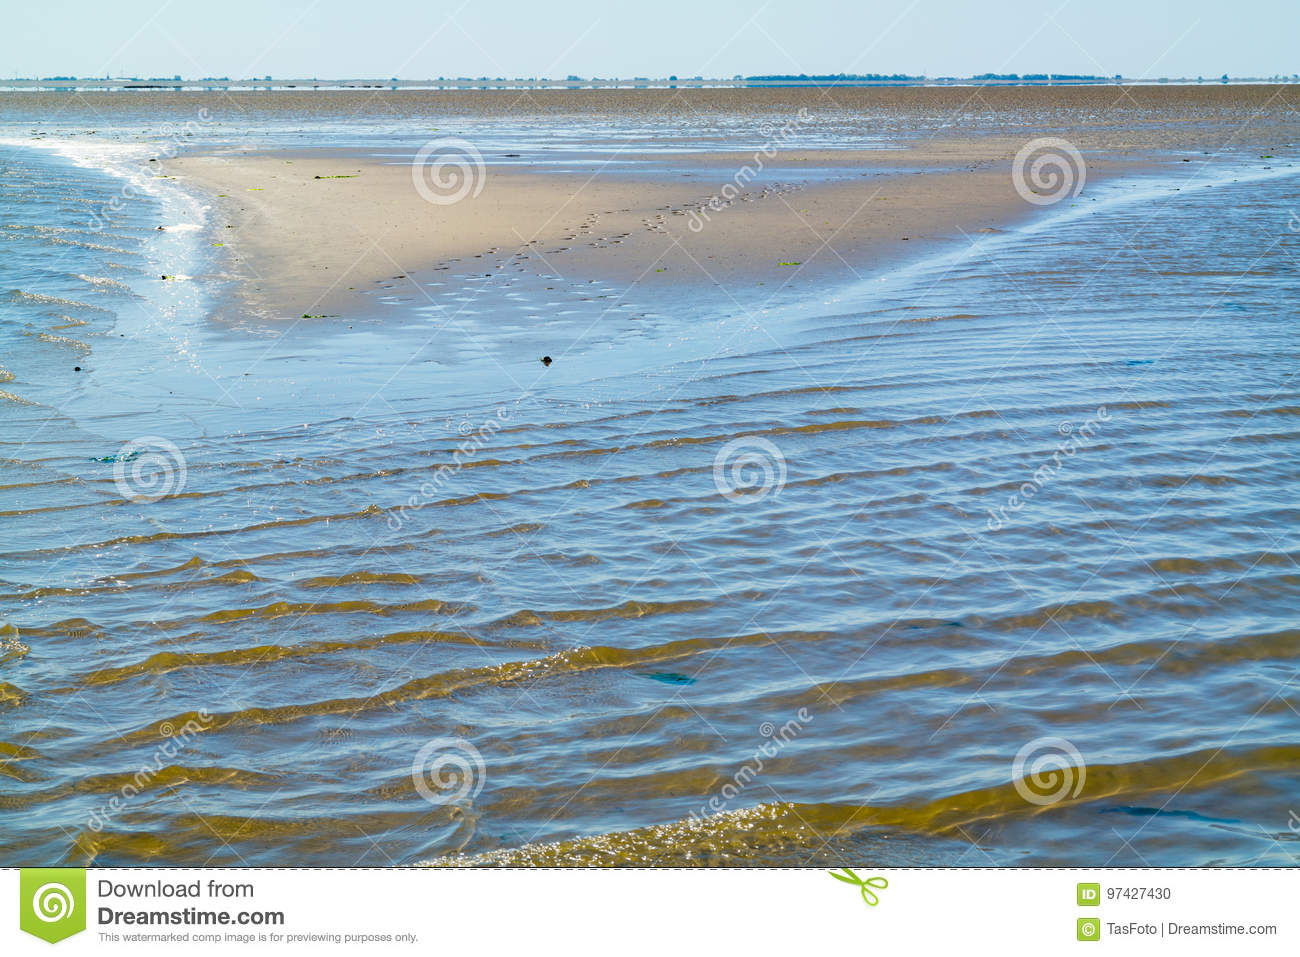 Mud and sand flats, mirage and rippling shallow water on Waddensea, Netherlands